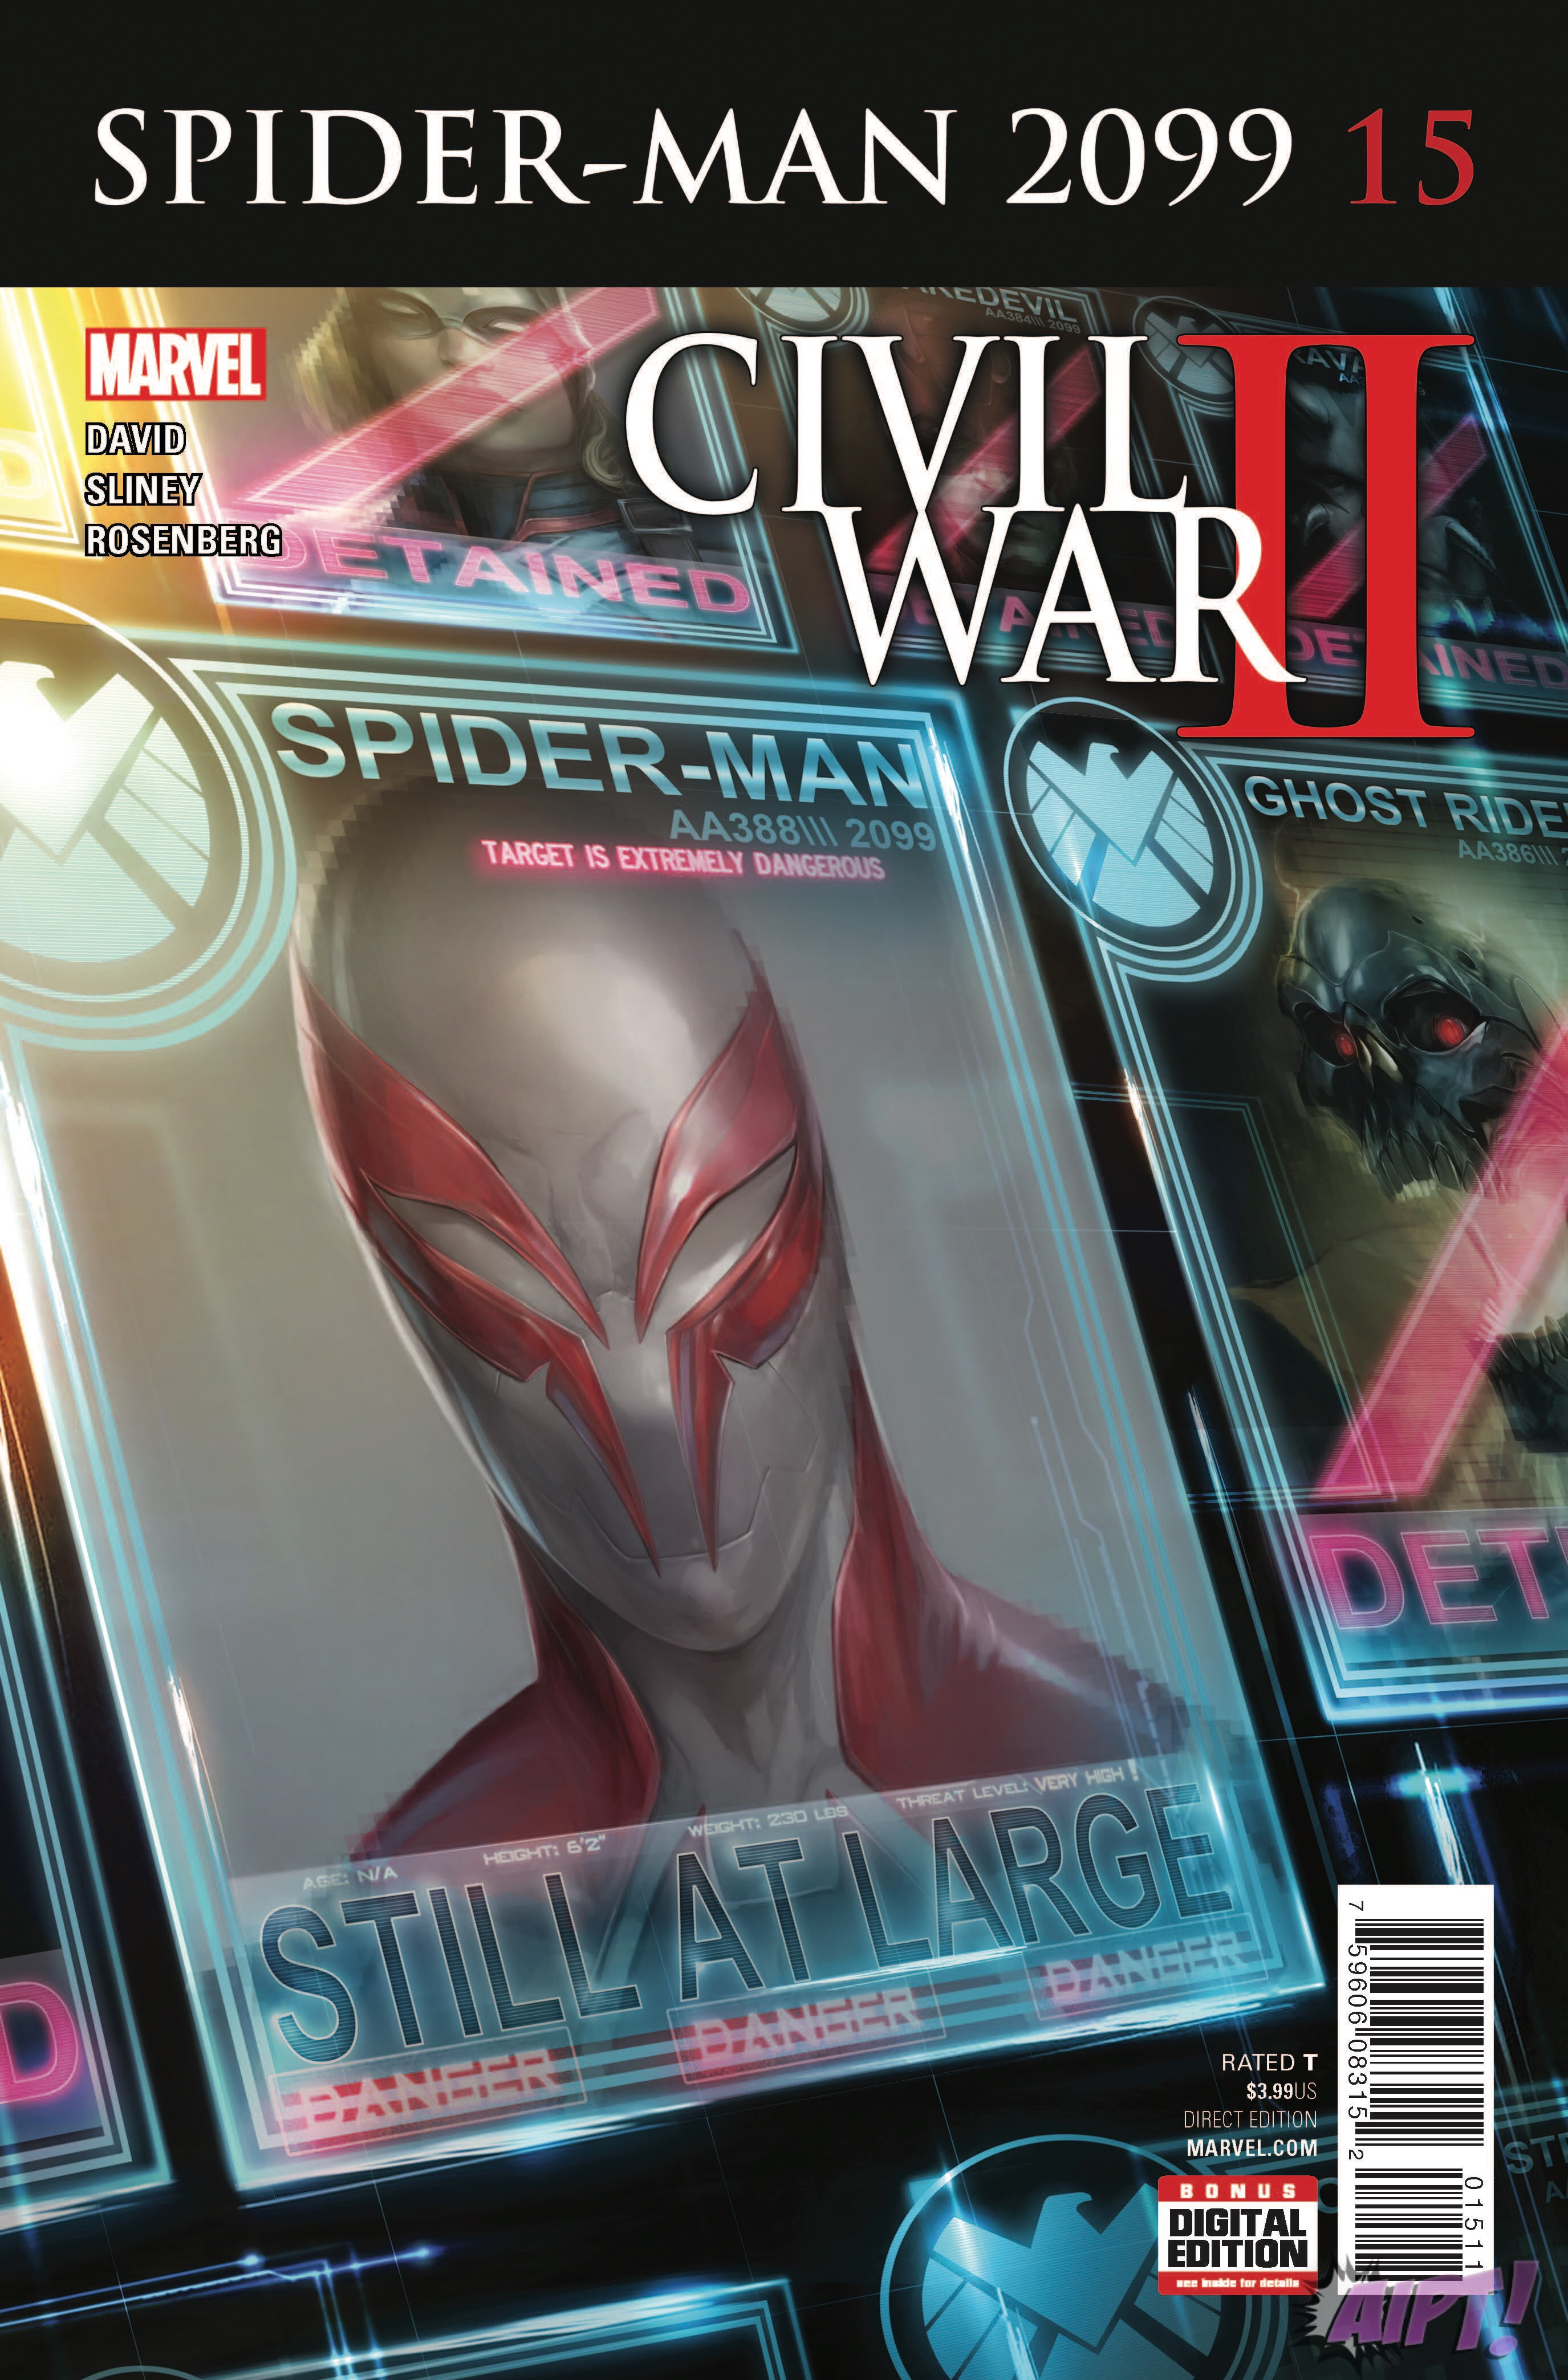 [EXCLUSIVE] Marvel Preview: Spider-Man 2099 #15